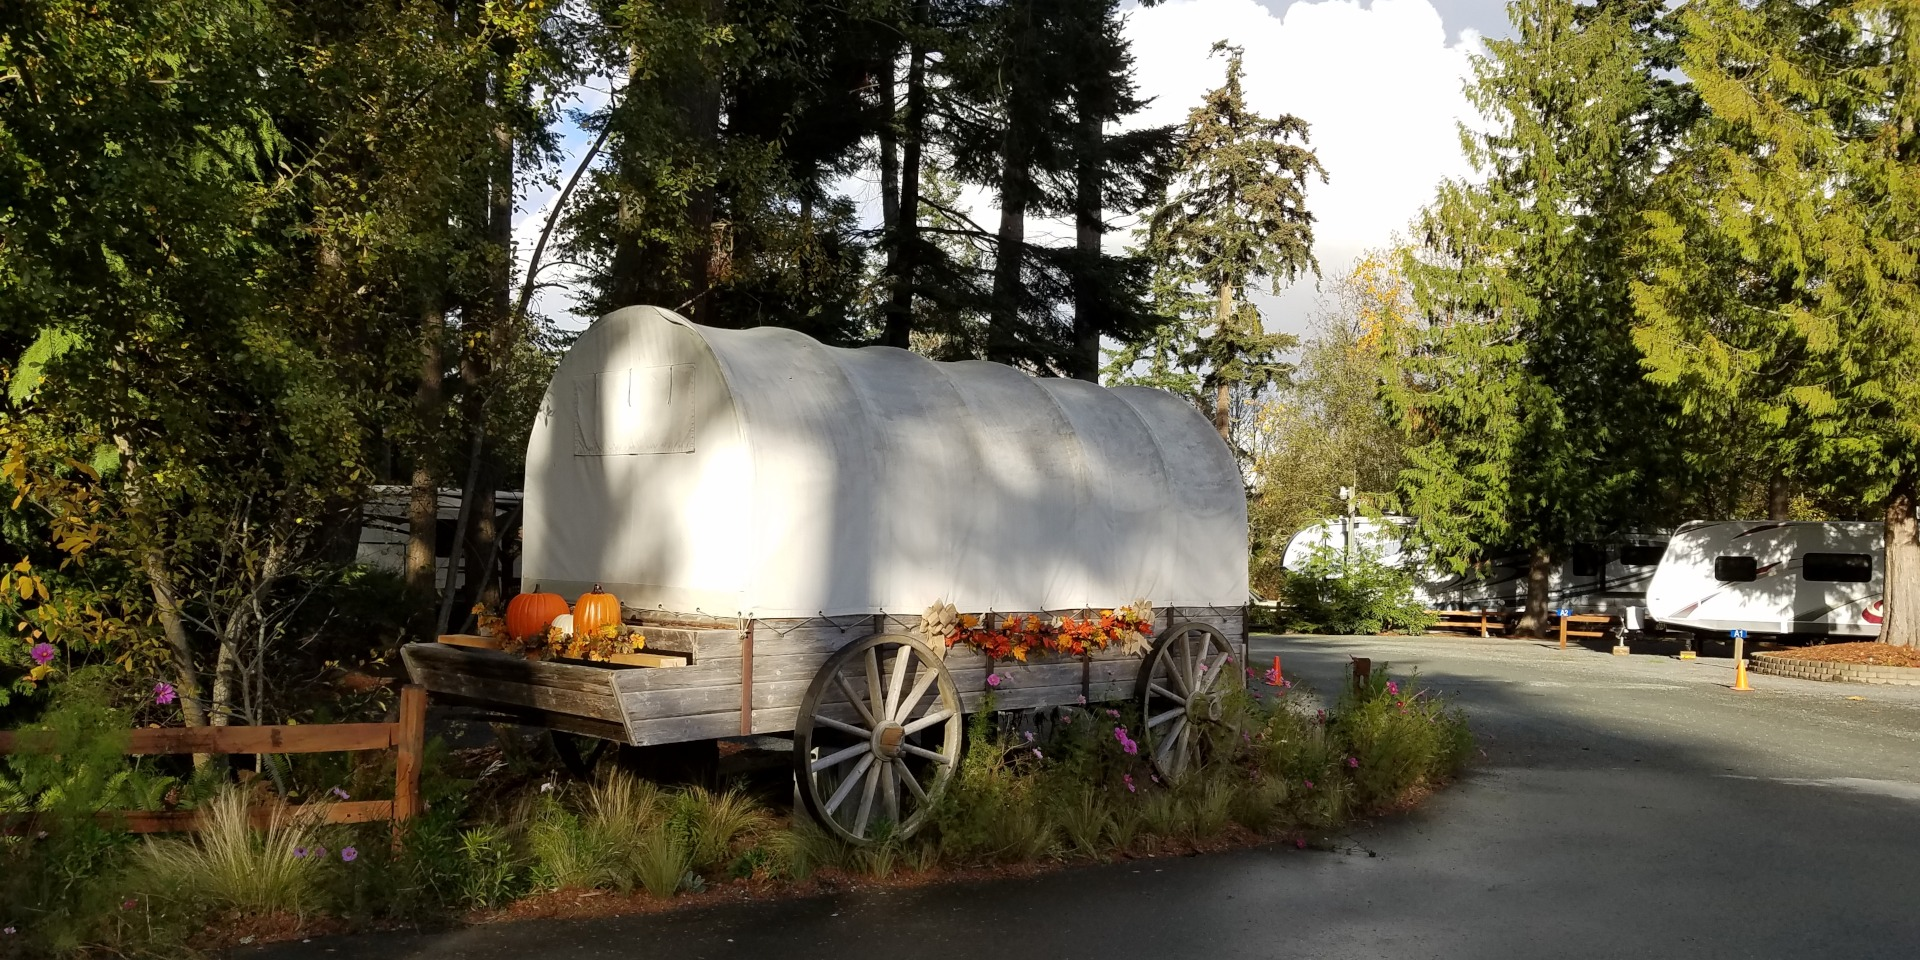 Pioneer Trails RV Park - Covered Wagon